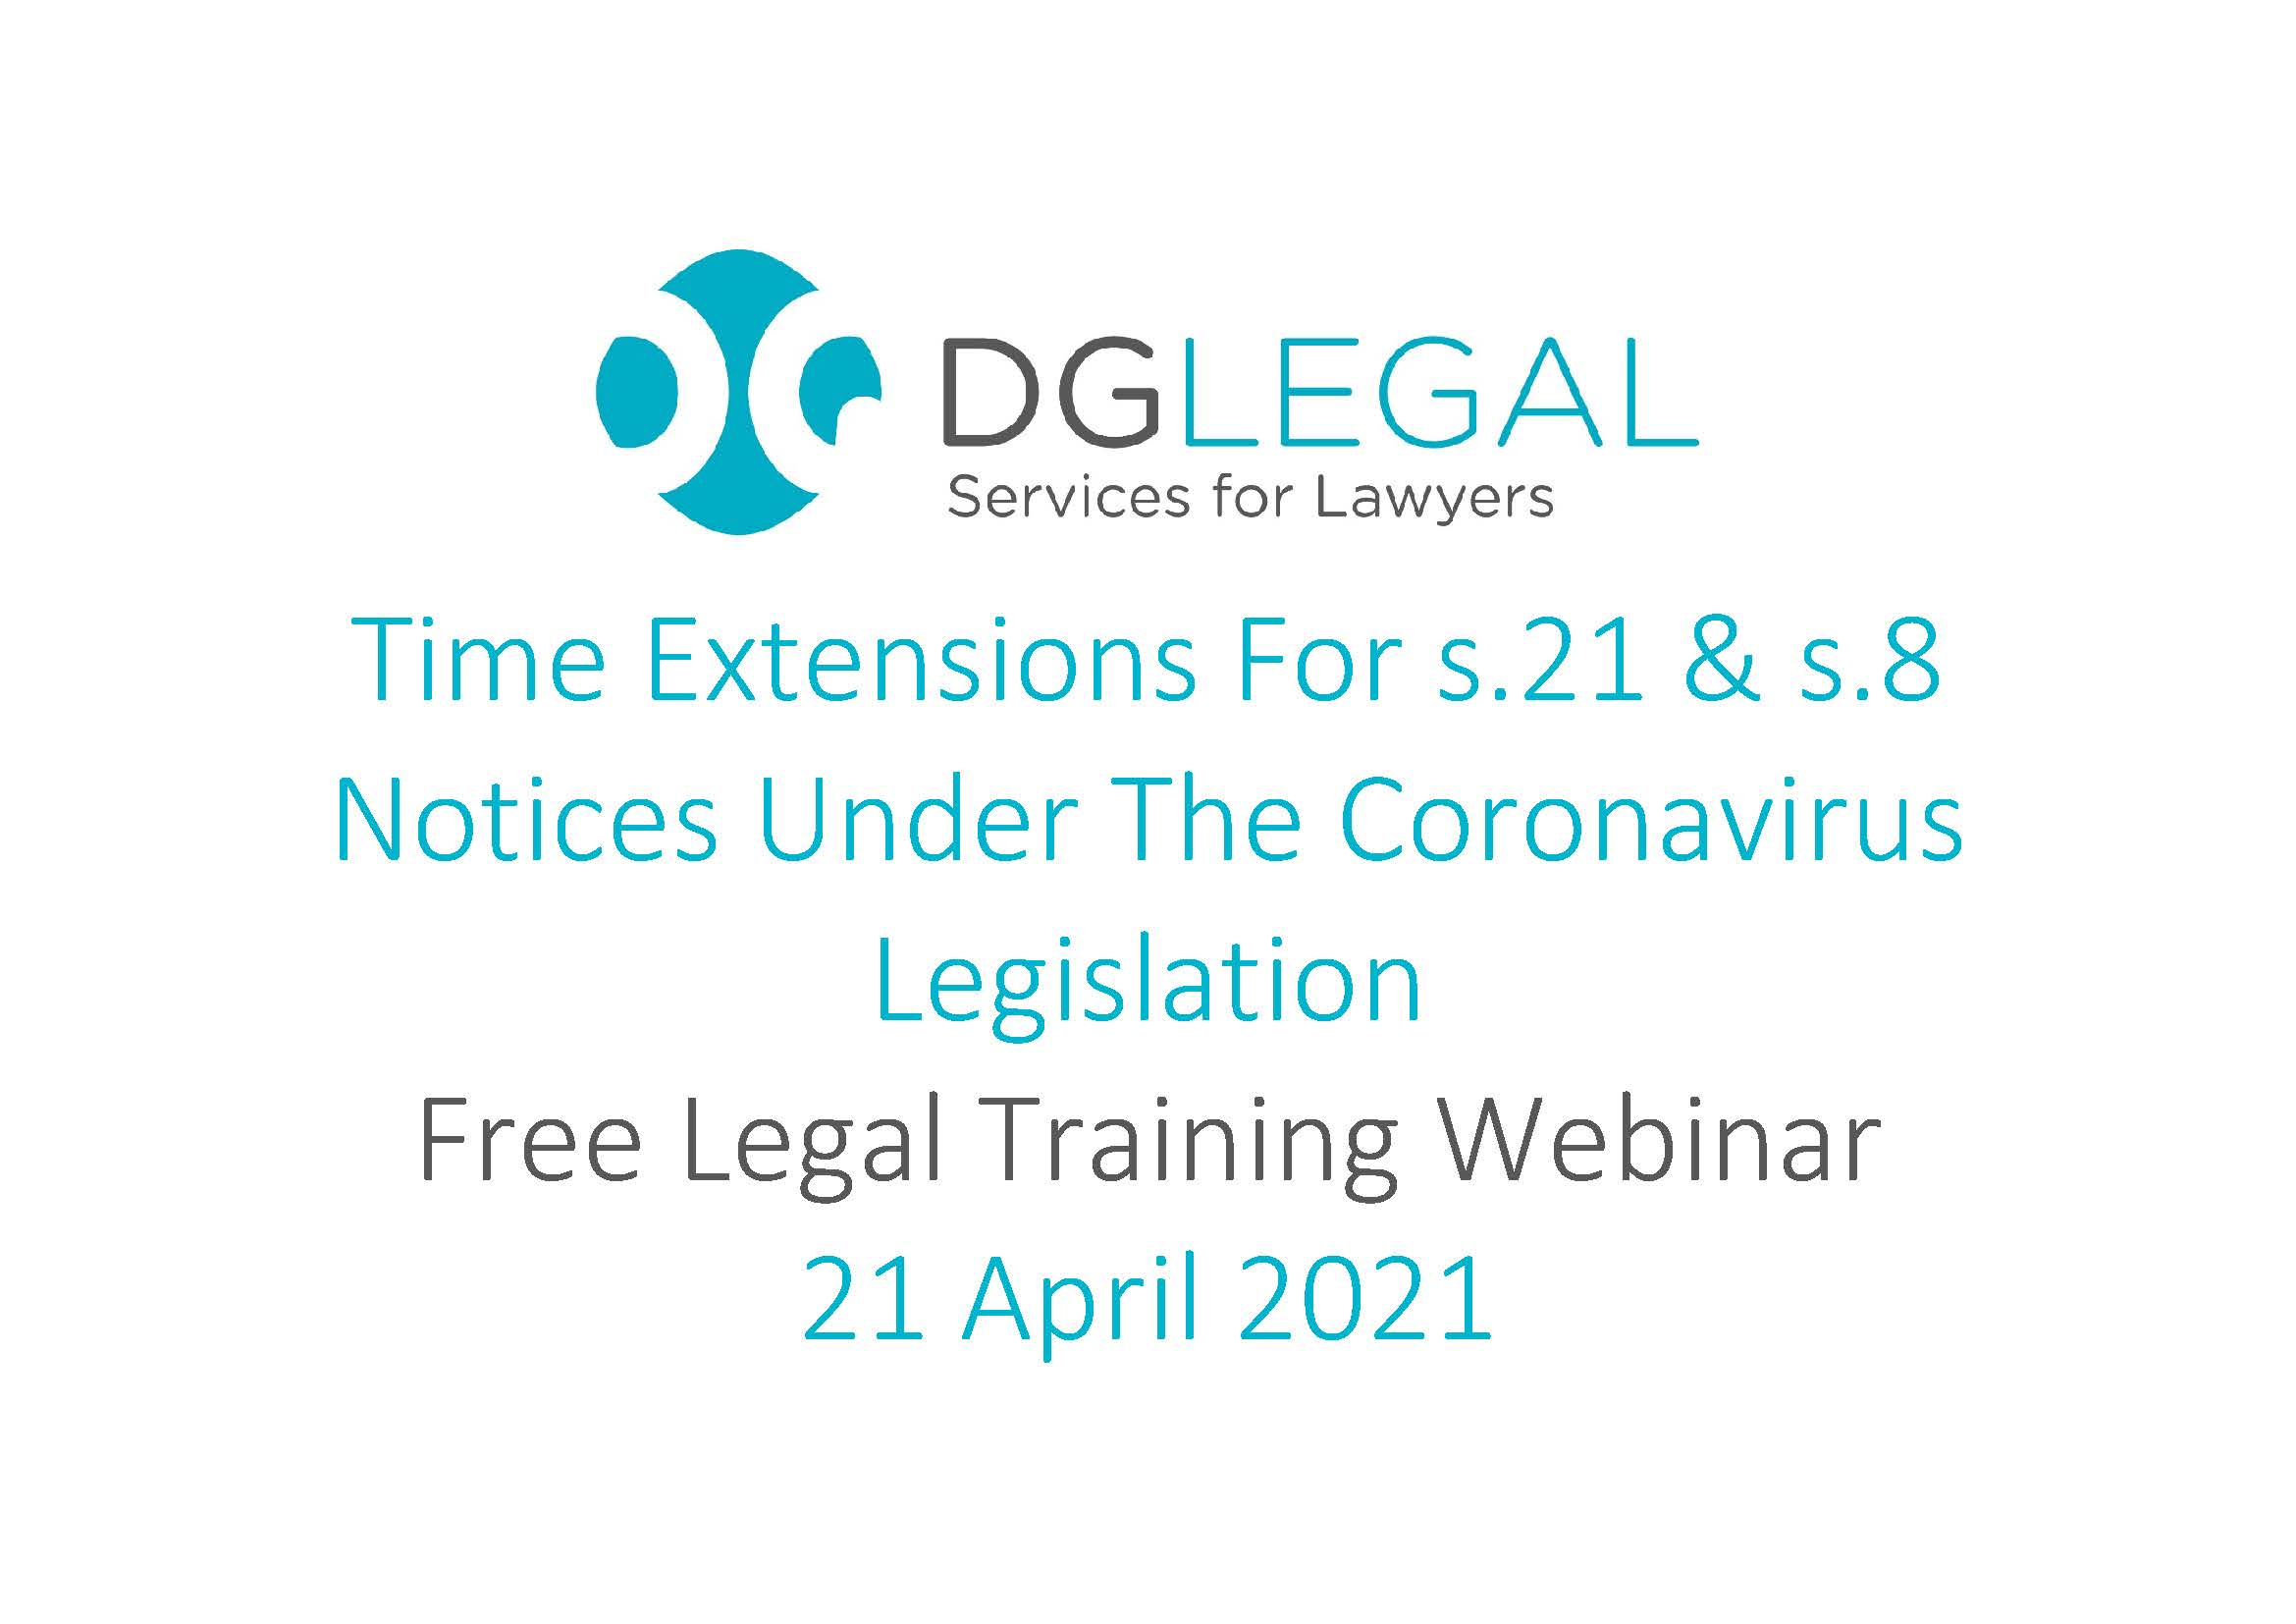 Time Extensions For s.21 & s.8 Notices Under The Coronavirus Legislation